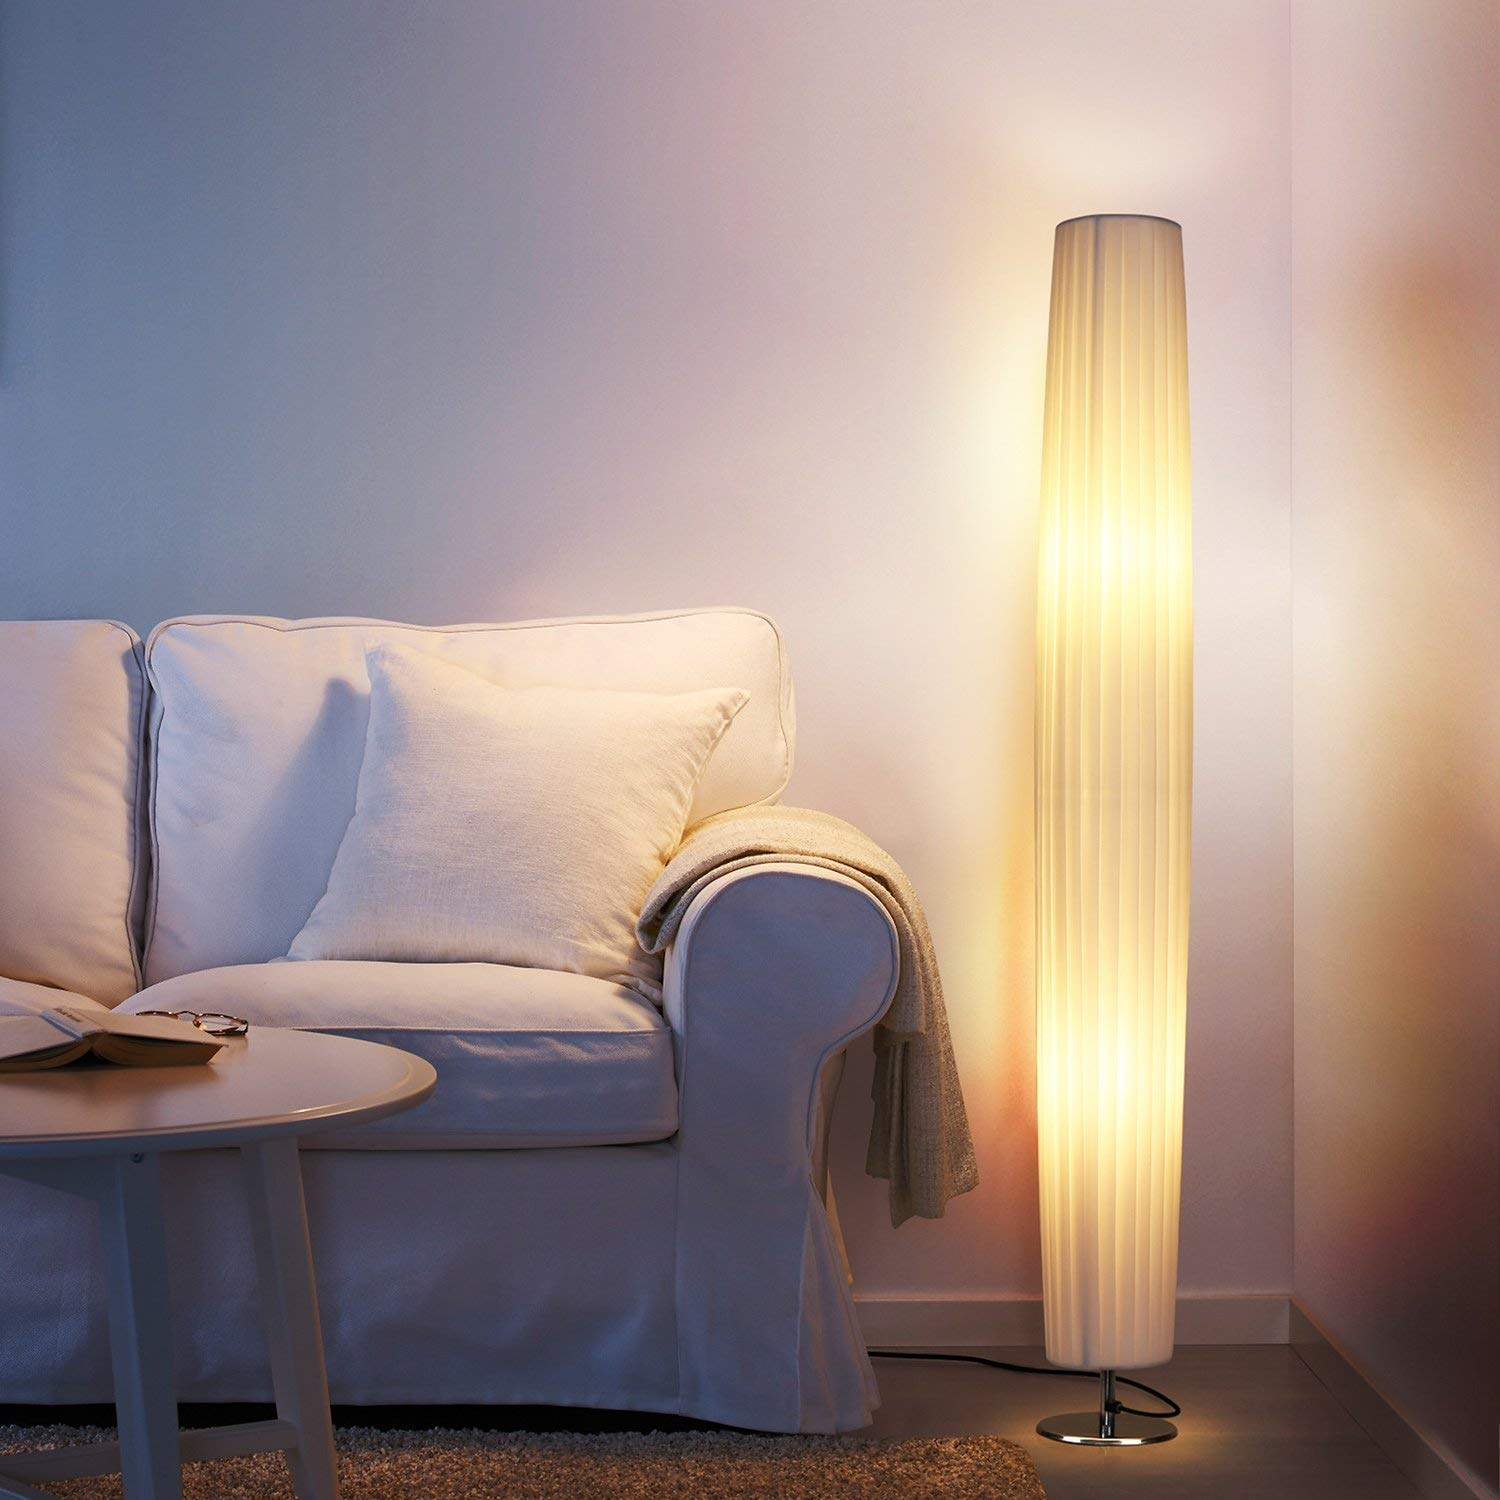 Albrillo LED Floor Lamp with Fabric Shades, 46 Inch Tall Contemporary Standing Modern Floor Lamps for Living Room, Bedroom, Home, Office